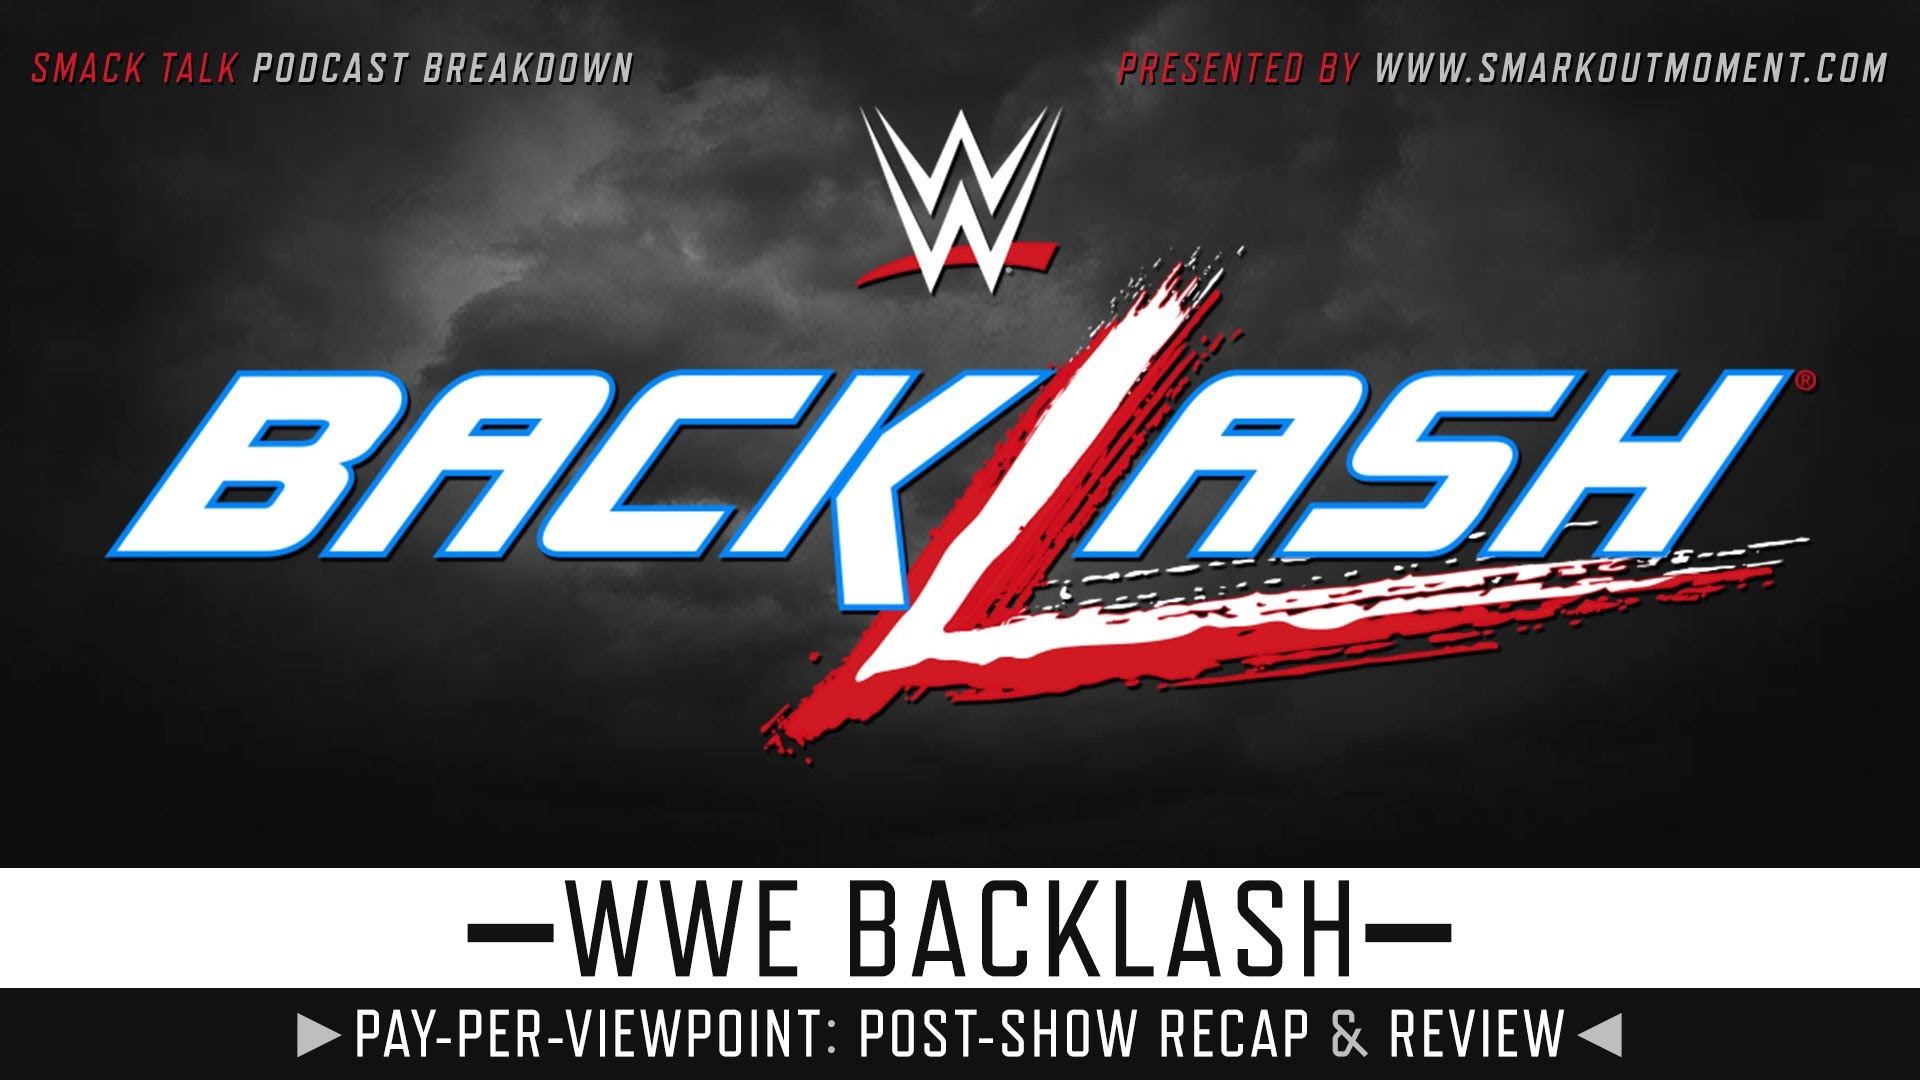 WWE Backlash 2018 Recap and Review Podcast